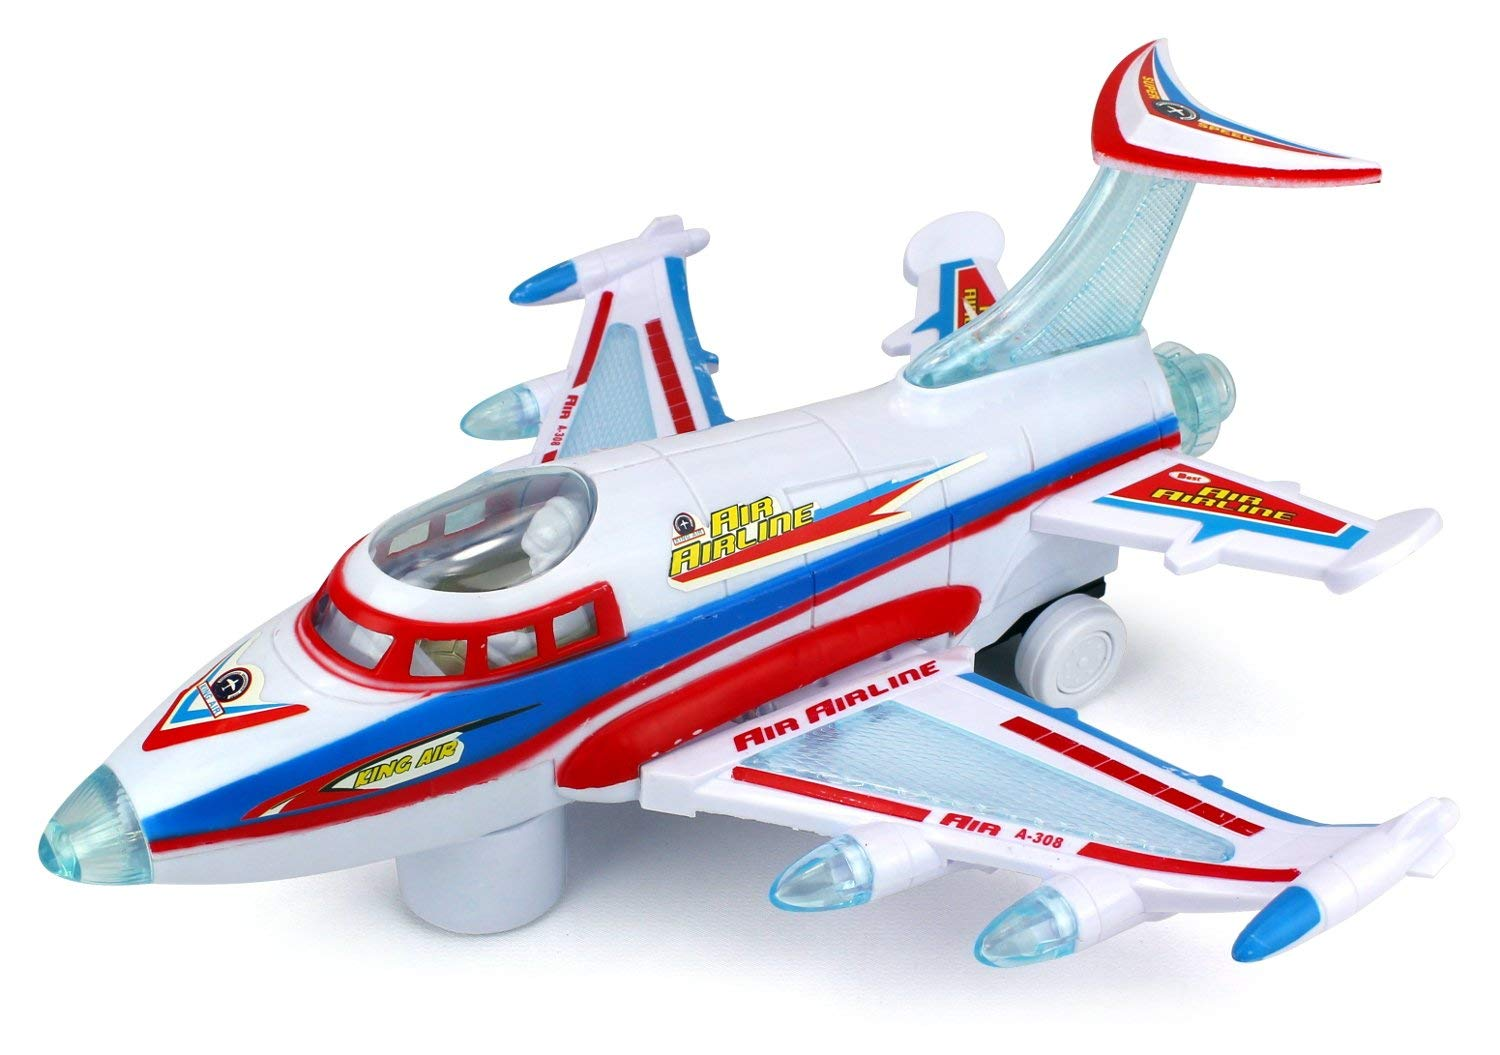 Battery Operated Kid's Bump and Go Toy Plane w  Fun Flashing Lights, Sounds by Velocity Toys